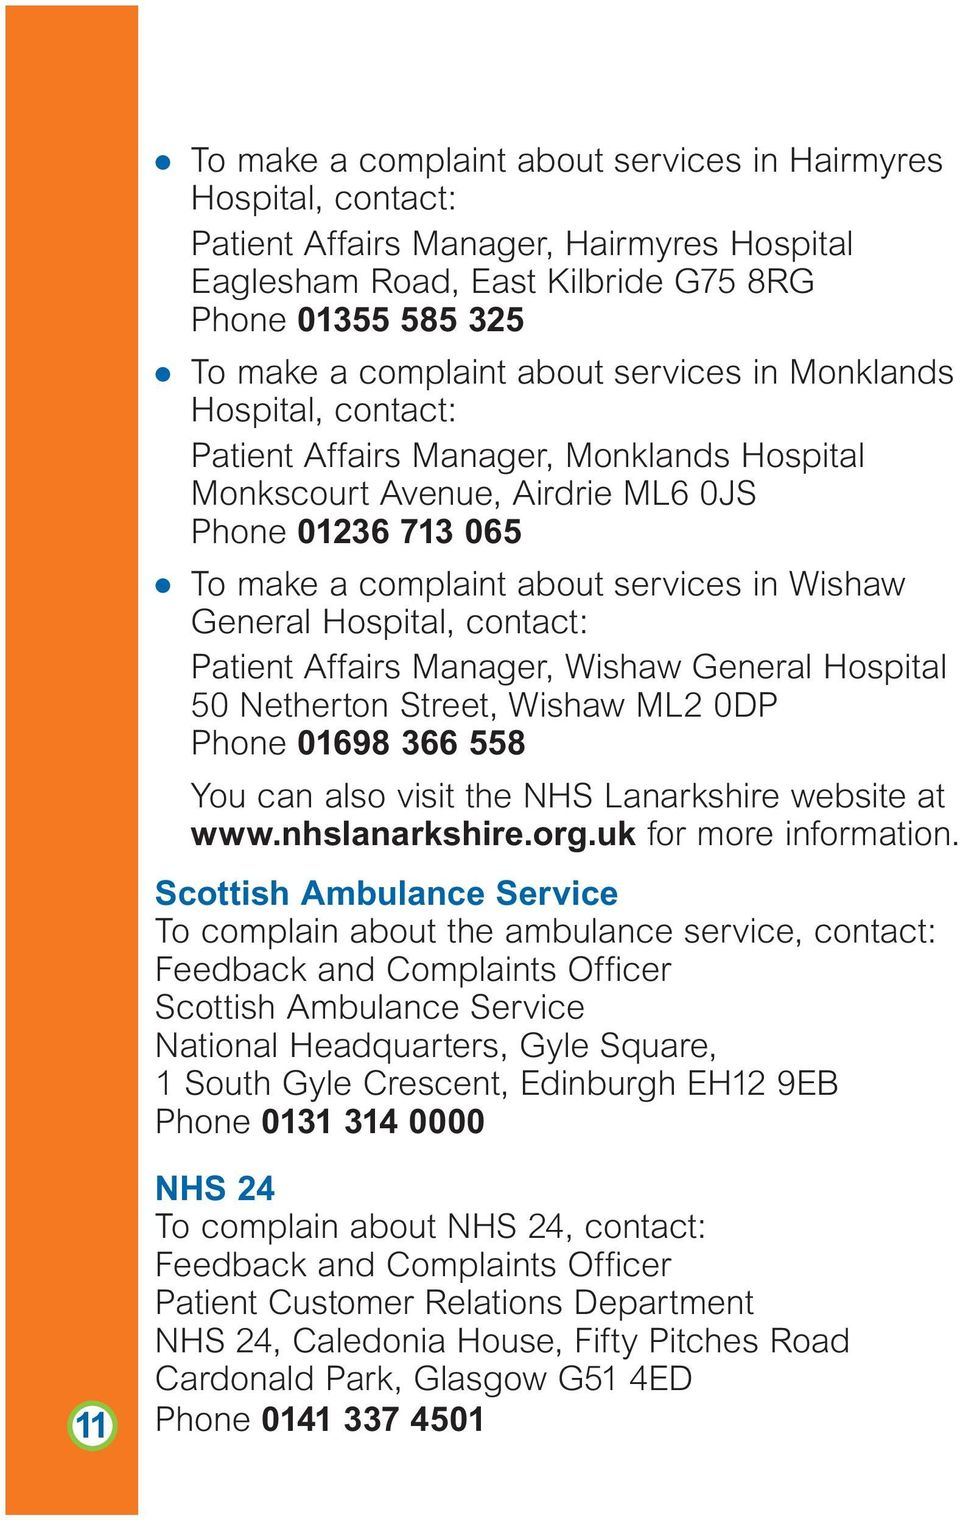 Hospital, contact: Patient Affairs Manager, Wishaw General Hospital 50 Netherton Street, Wishaw ML2 0DP Phone 01698 366 558 You can also visit the NHS Lanarkshire website at www.nhslanarkshire.org.